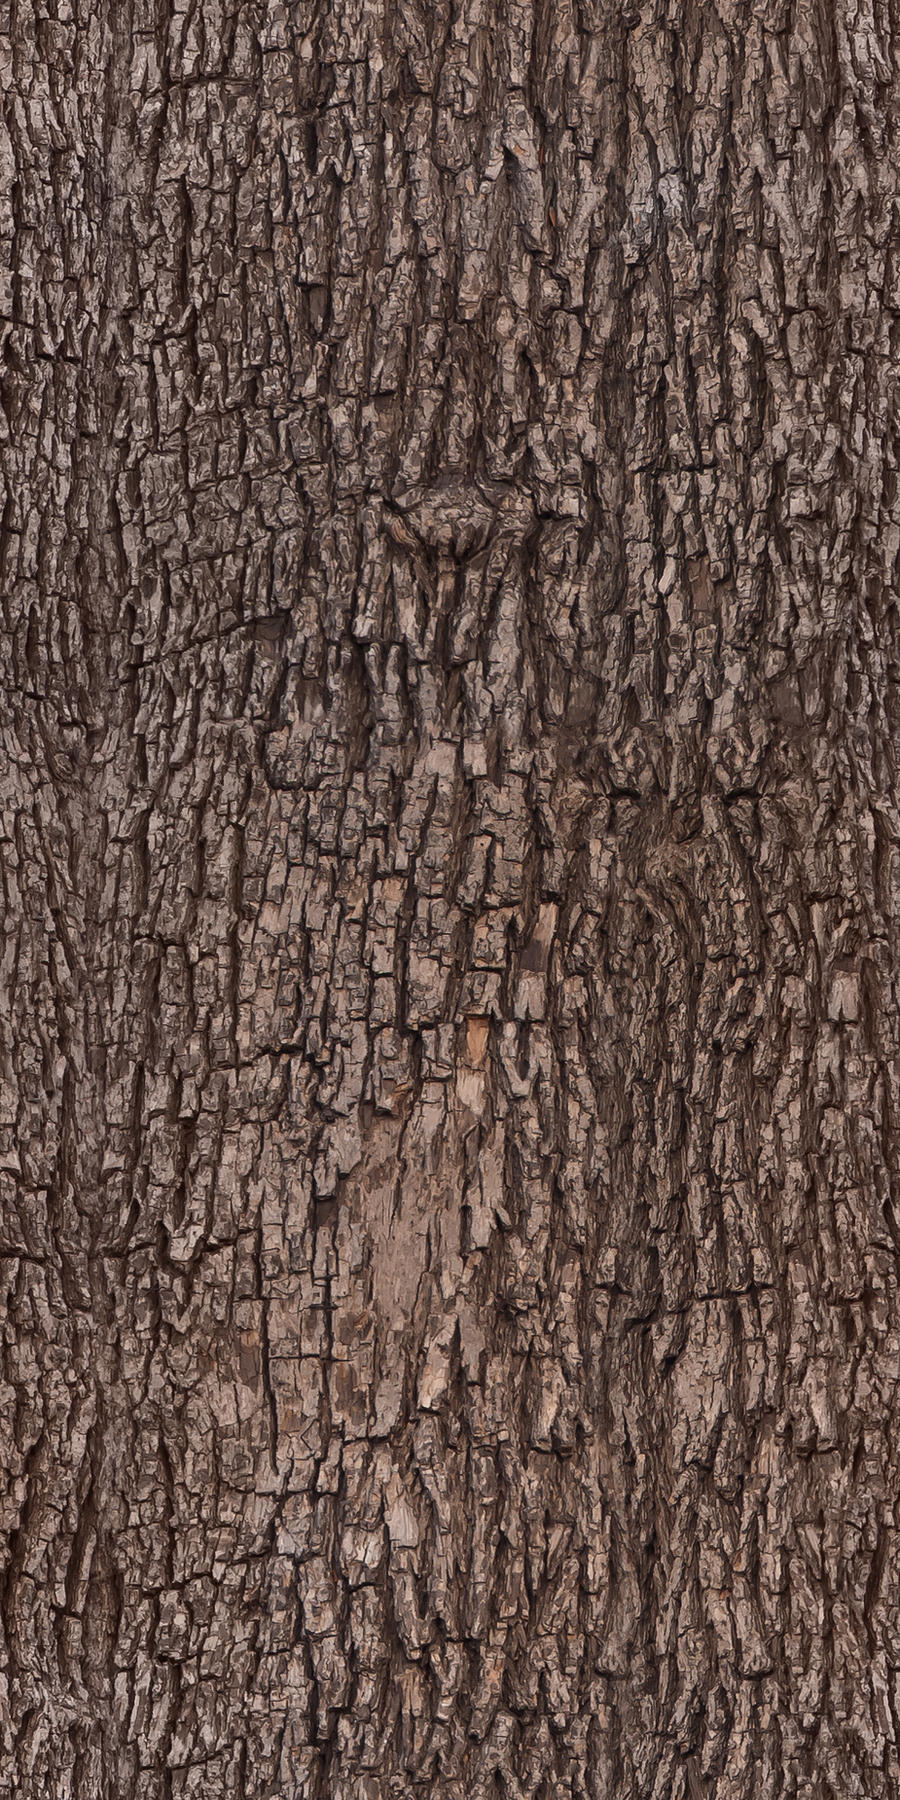 Tree bark - texture, pattern by ivangraphics on DeviantArt: ivangraphics.deviantart.com/art/Tree-bark-texture-pattern-208493997